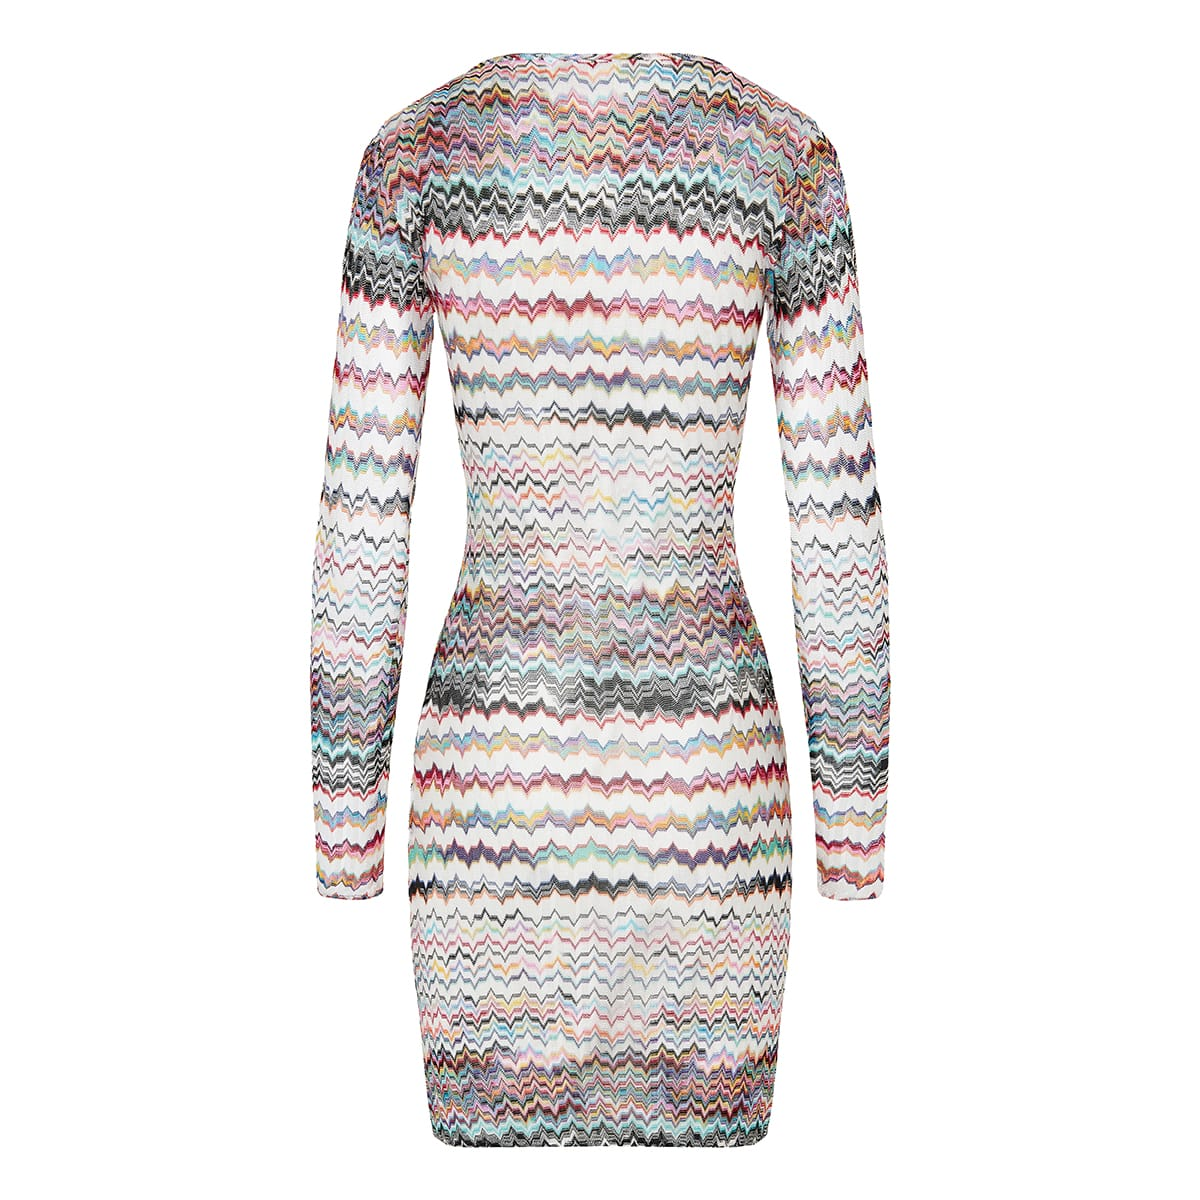 Patterned knit cover-up